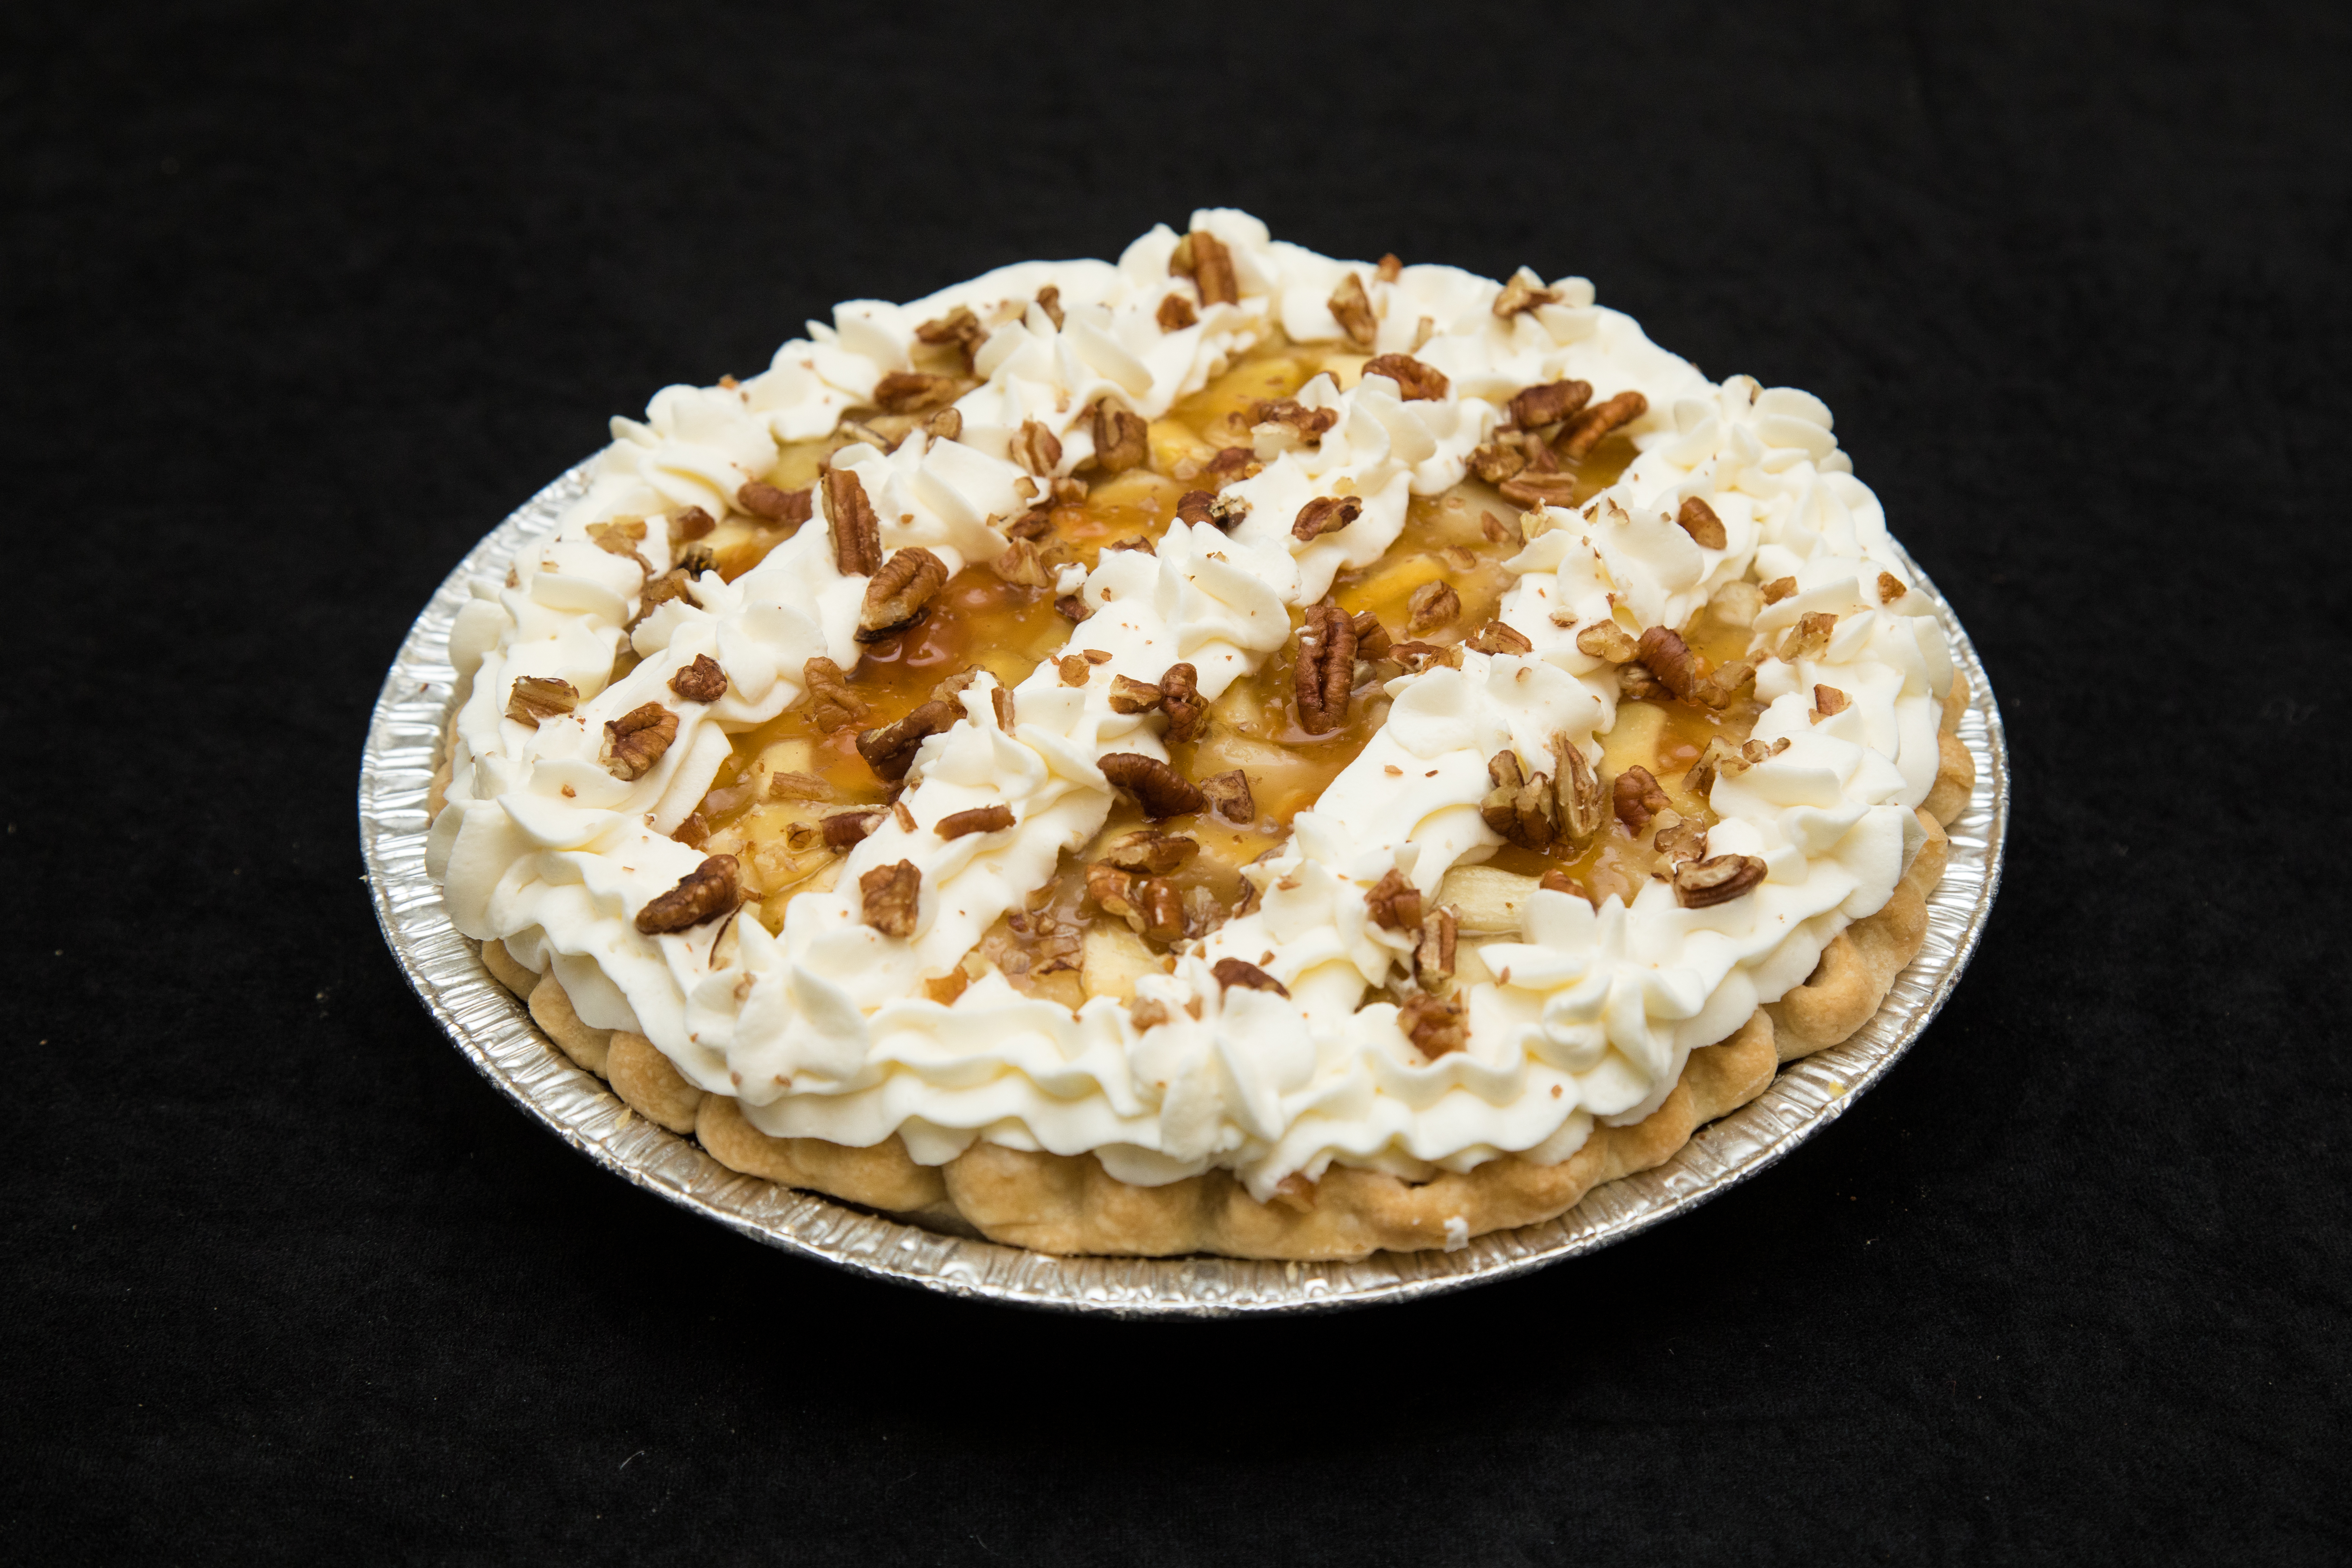 2019 Amateur 1st Place Apple Apricot Apple Winkie Pie, David Harper, Lone Rock, WI